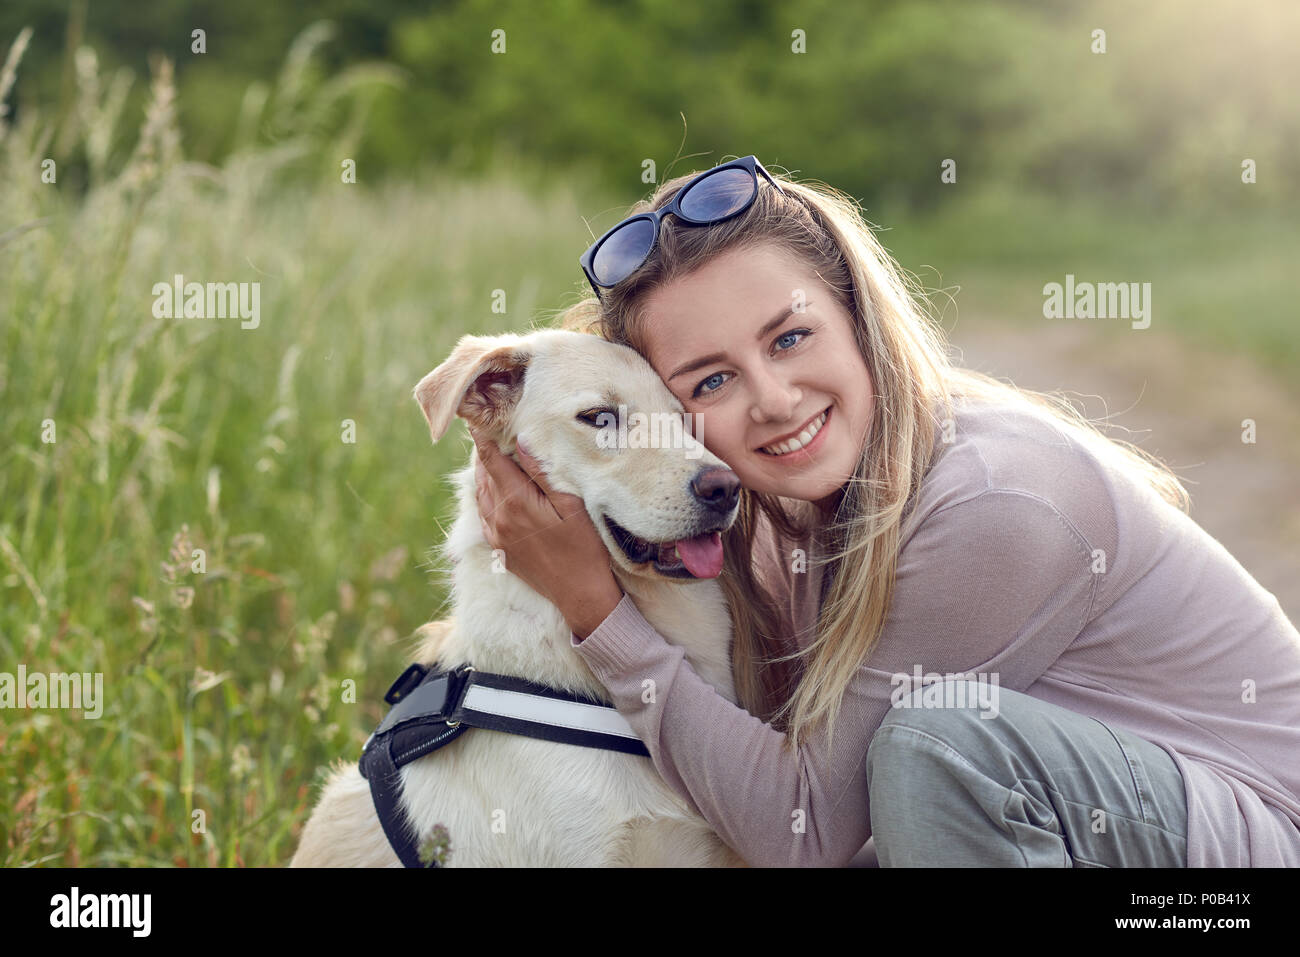 Happy smiling golden dog wearing a walking harness sitting facing its pretty young woman owner who is caressing it with a loving smile outdoors in cou - Stock Image